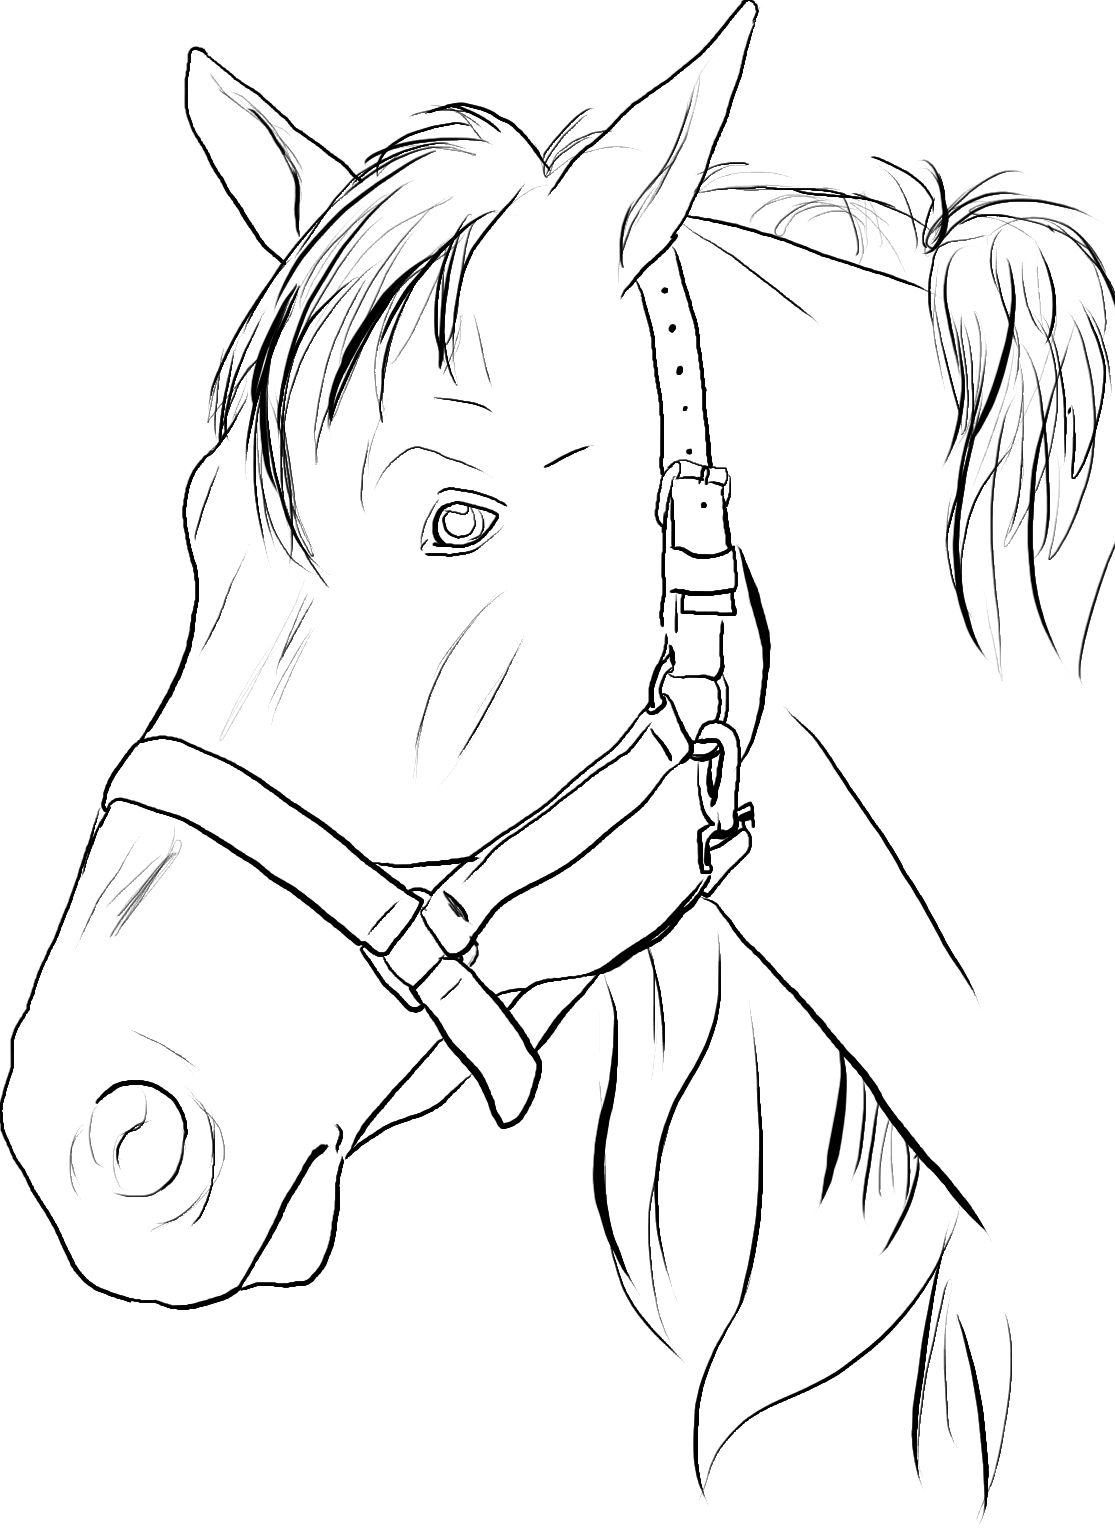 Head Of Horse Coloring Page Horse Coloring Pages Horse Coloring Coloring Pictures